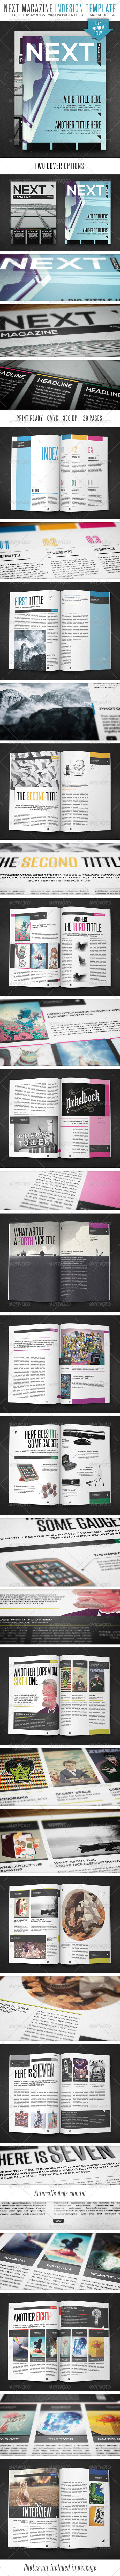 Next MGZ Template - Magazines Print Templates